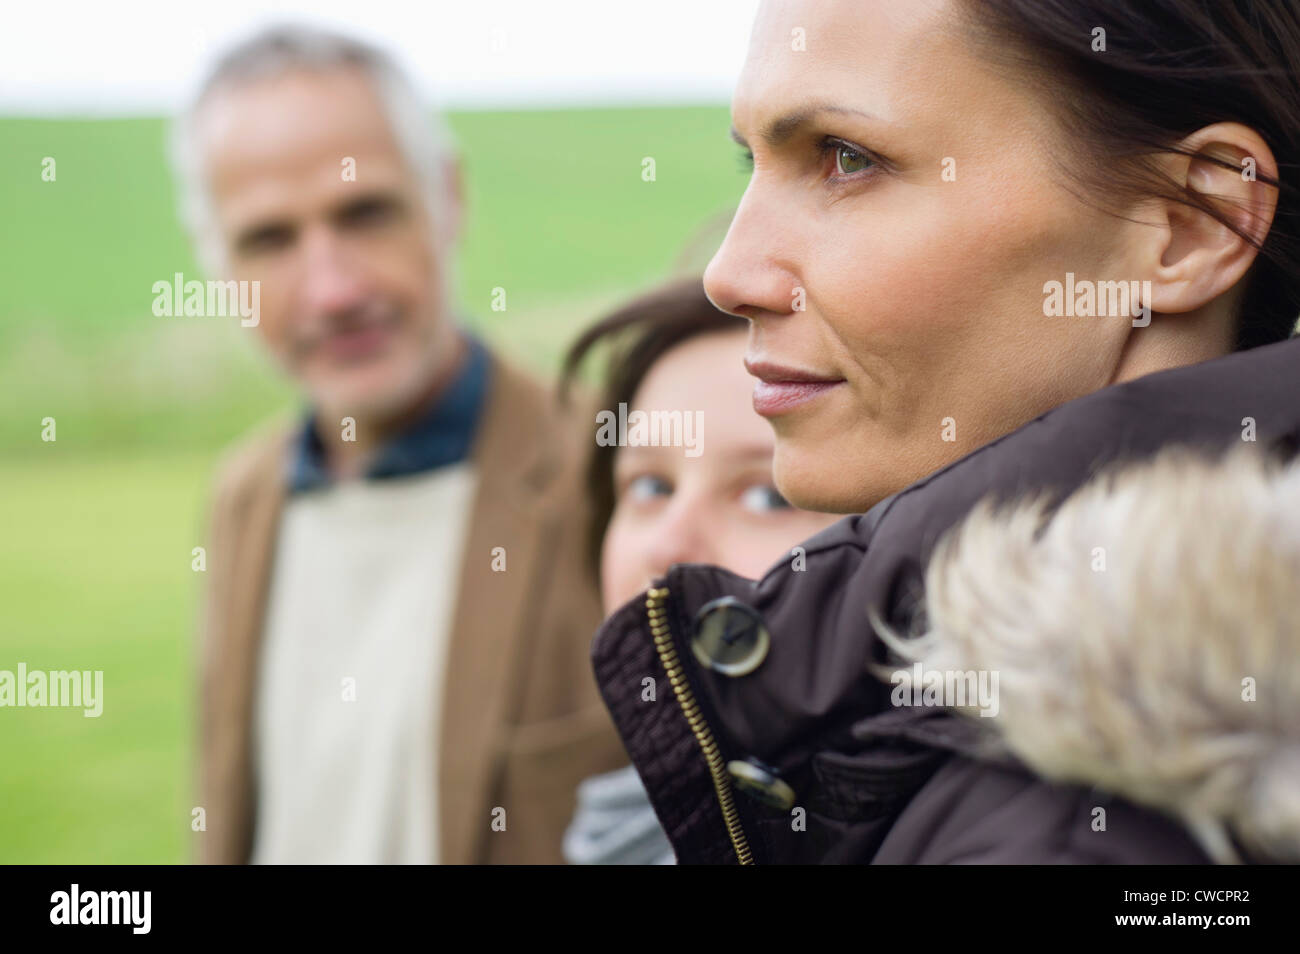 Close-up of a woman with her family - Stock Image